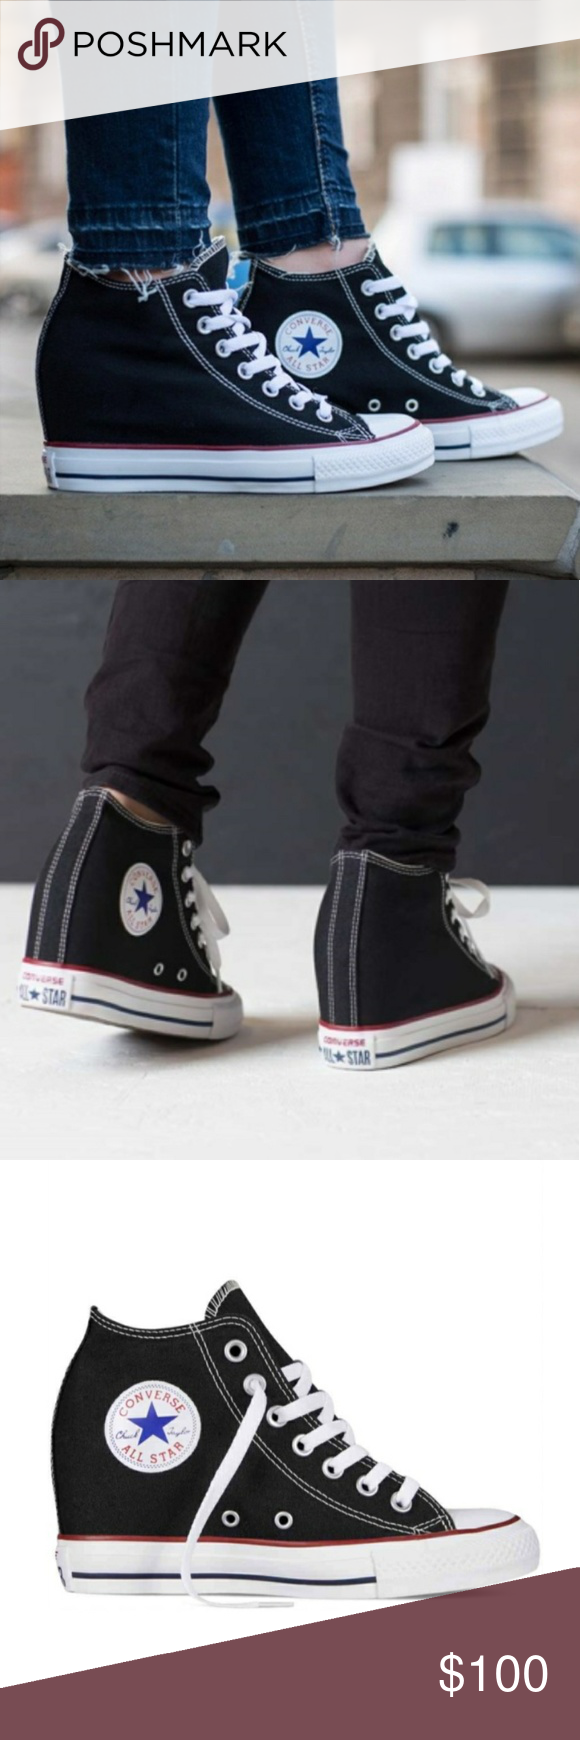 NWT Converse Chuck Taylor Lux Mid Wedge Sneakers Brand new